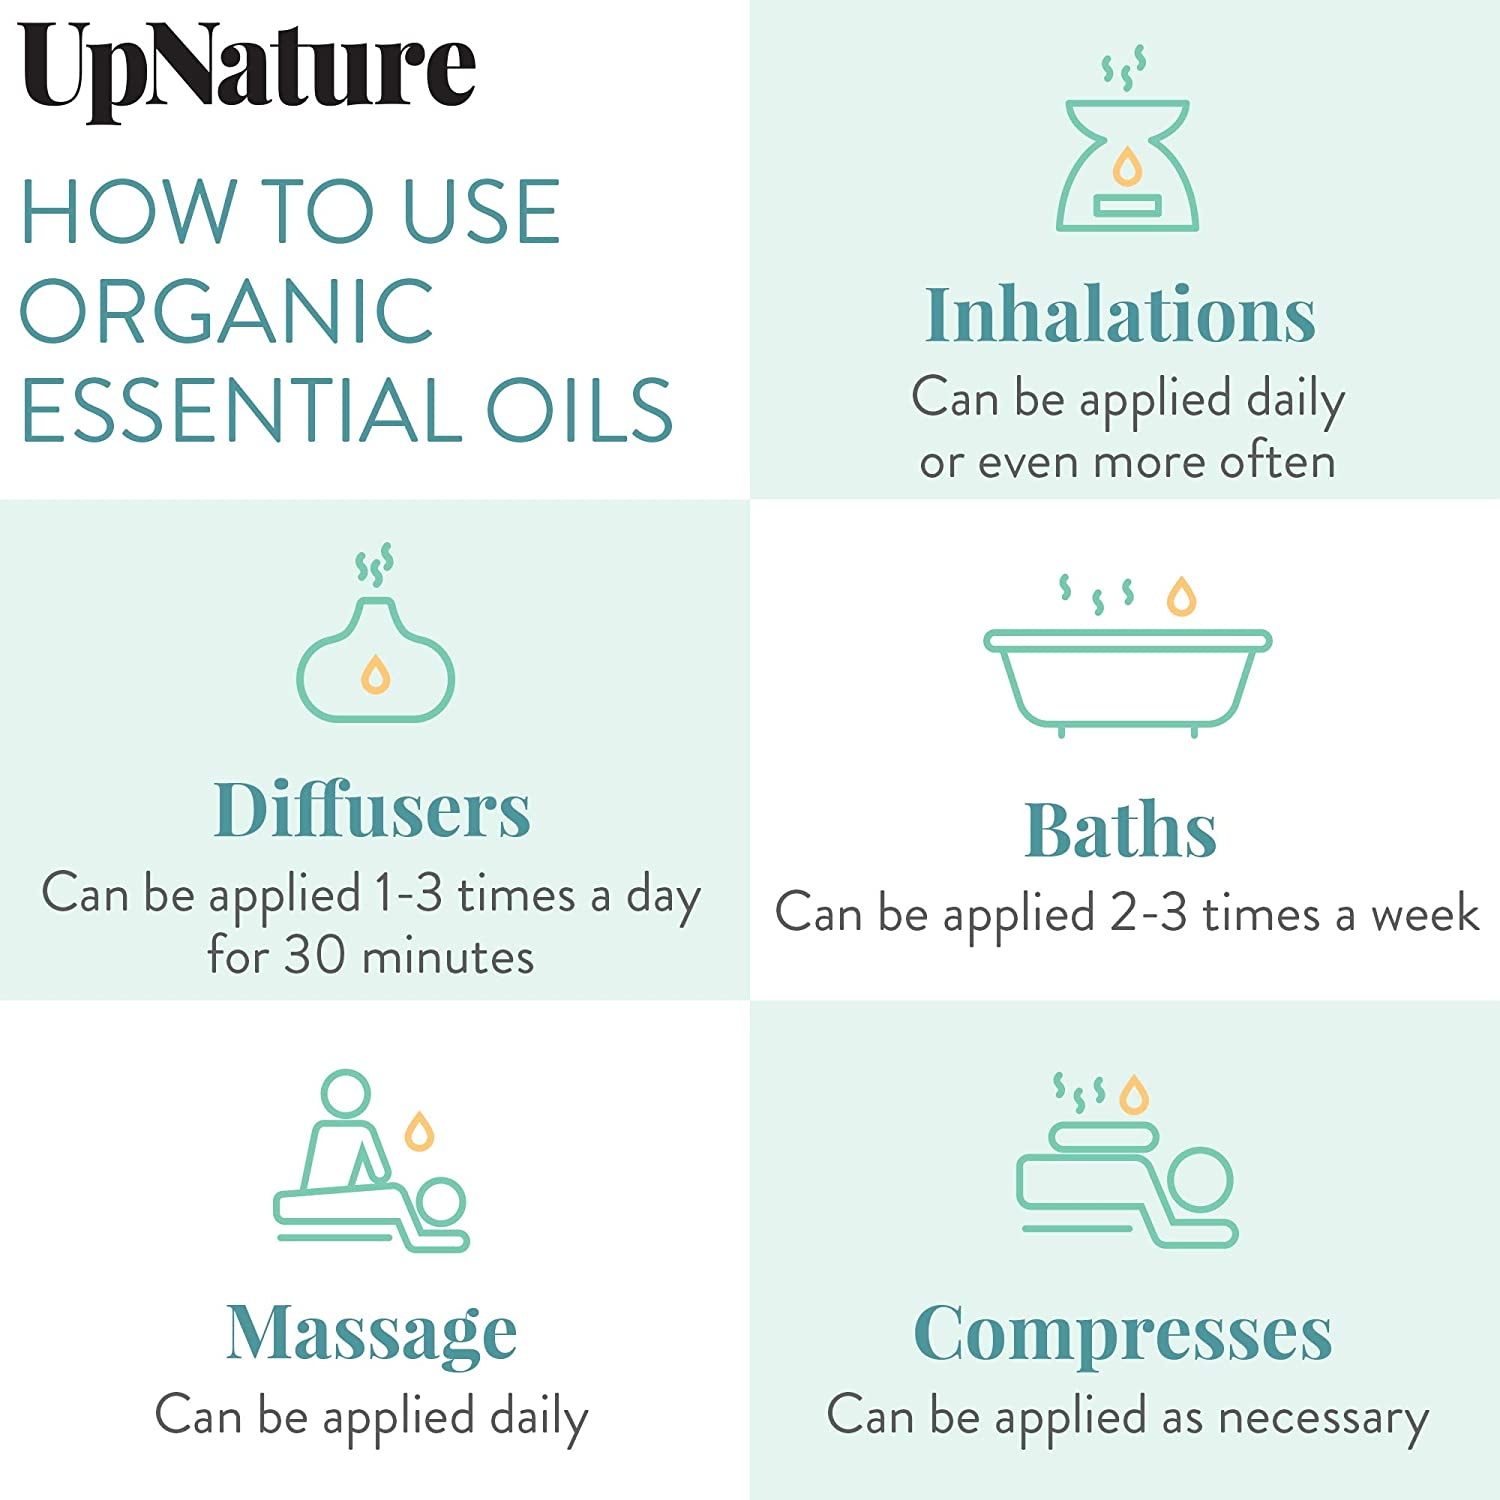 UpNature Peppermint Essential Oil 4 OZ - Peppermint Oil Therapeutic Grade, Undiluted, Non-GMO - Relieve Head Tension, Great for Aromatherapy with Dropper